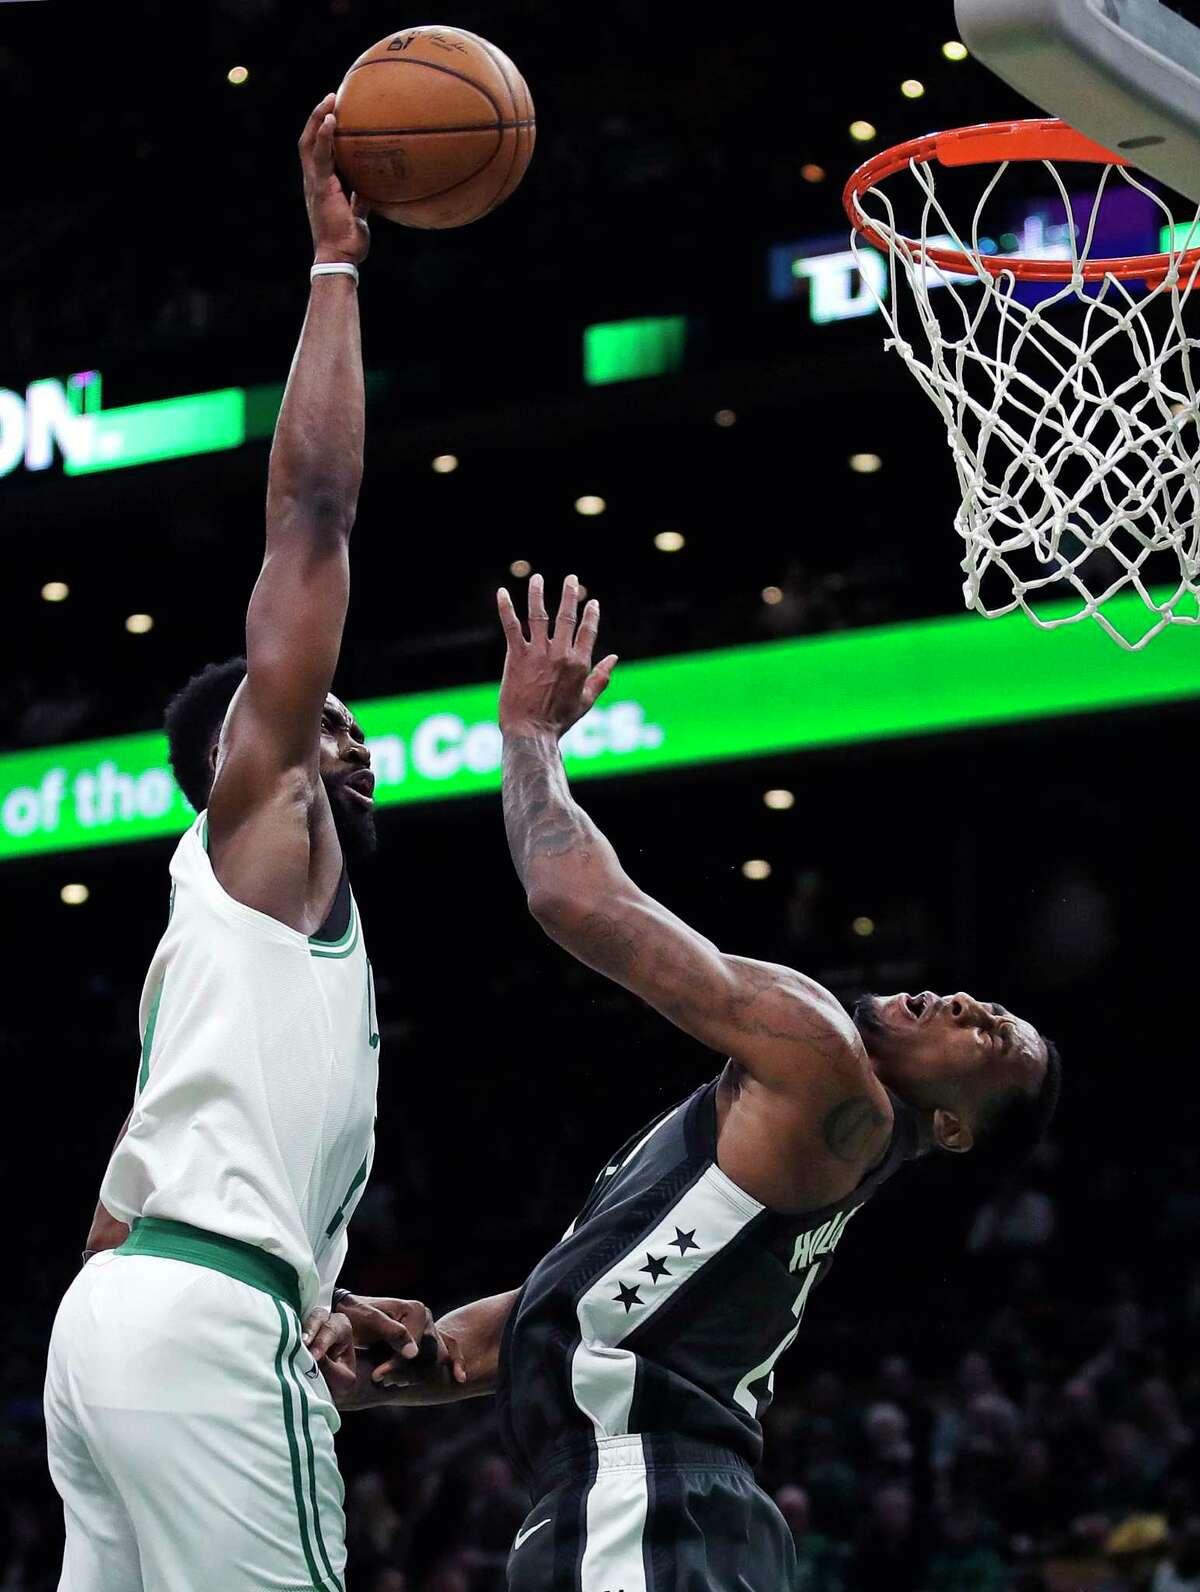 Boston Celtics guard Jaylen Brown, left, lines up a dunk over Brooklyn Nets forward Rondae Hollis-Jefferson, right, during the second half of an NBA basketball game in Boston, Monday, Jan. 28, 2019. The Celtics won 112-104. (AP Photo/Charles Krupa)